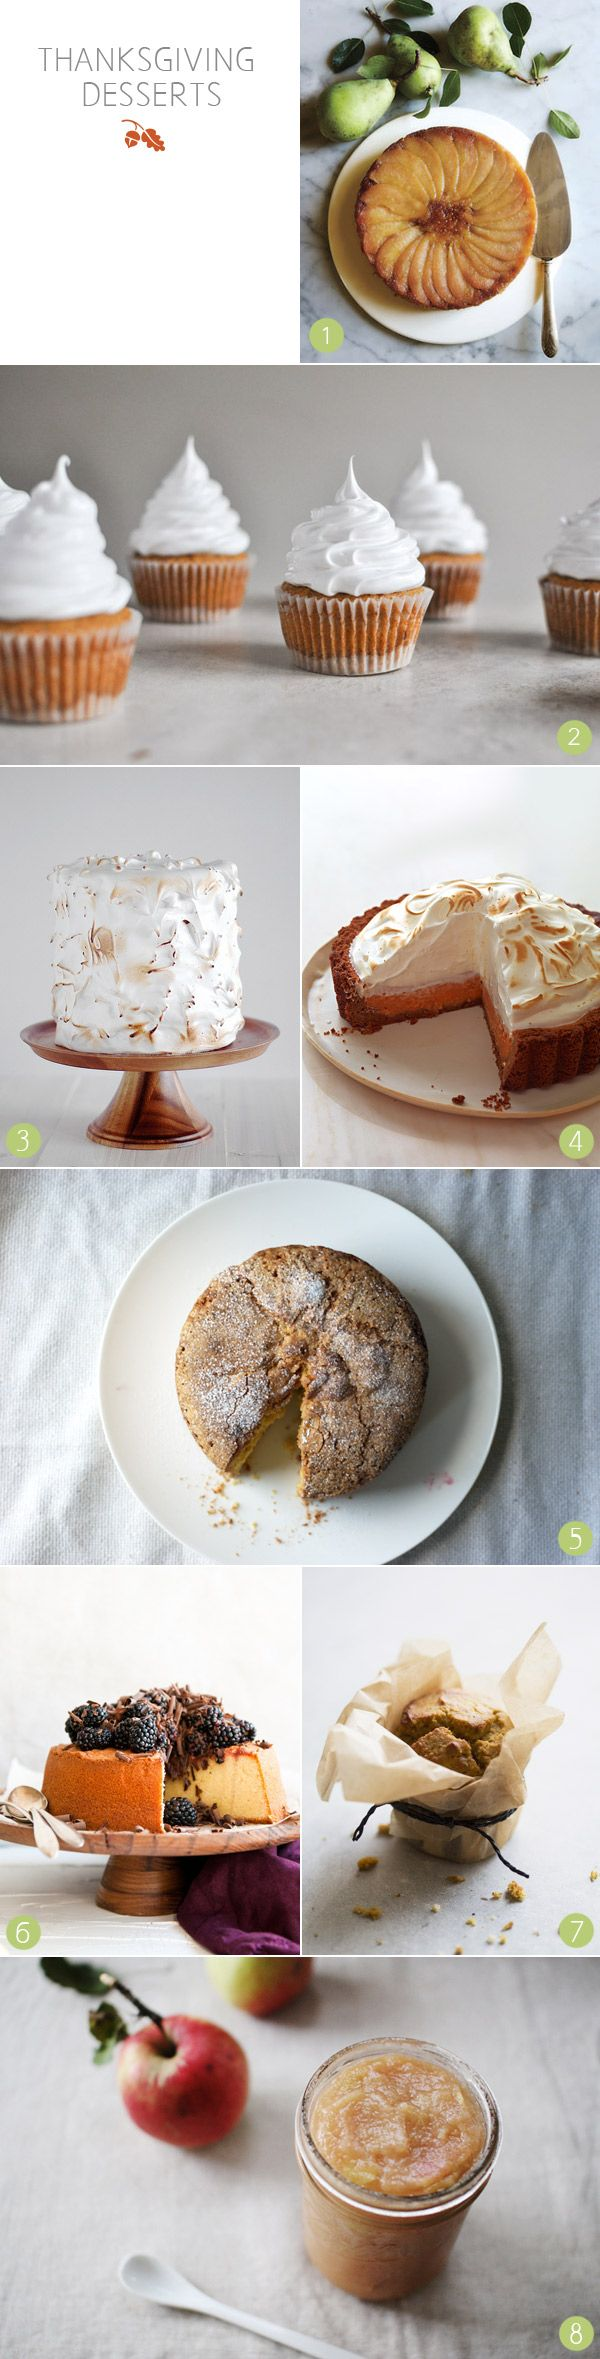 Thanksgiving Desserts - The Sweetest Occasion